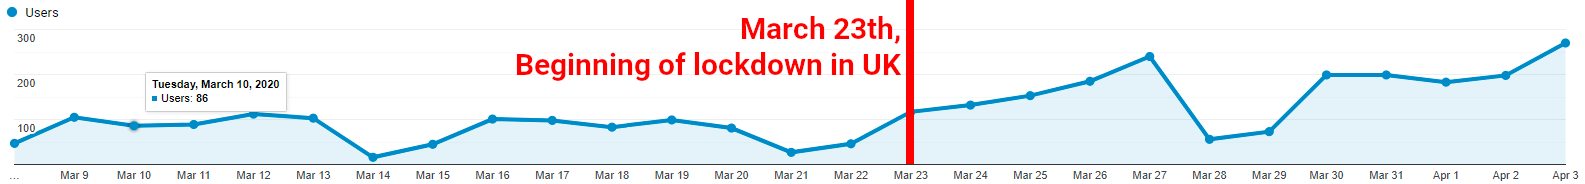 Users per day in UK, March 2020 - Lockdown on March 23th